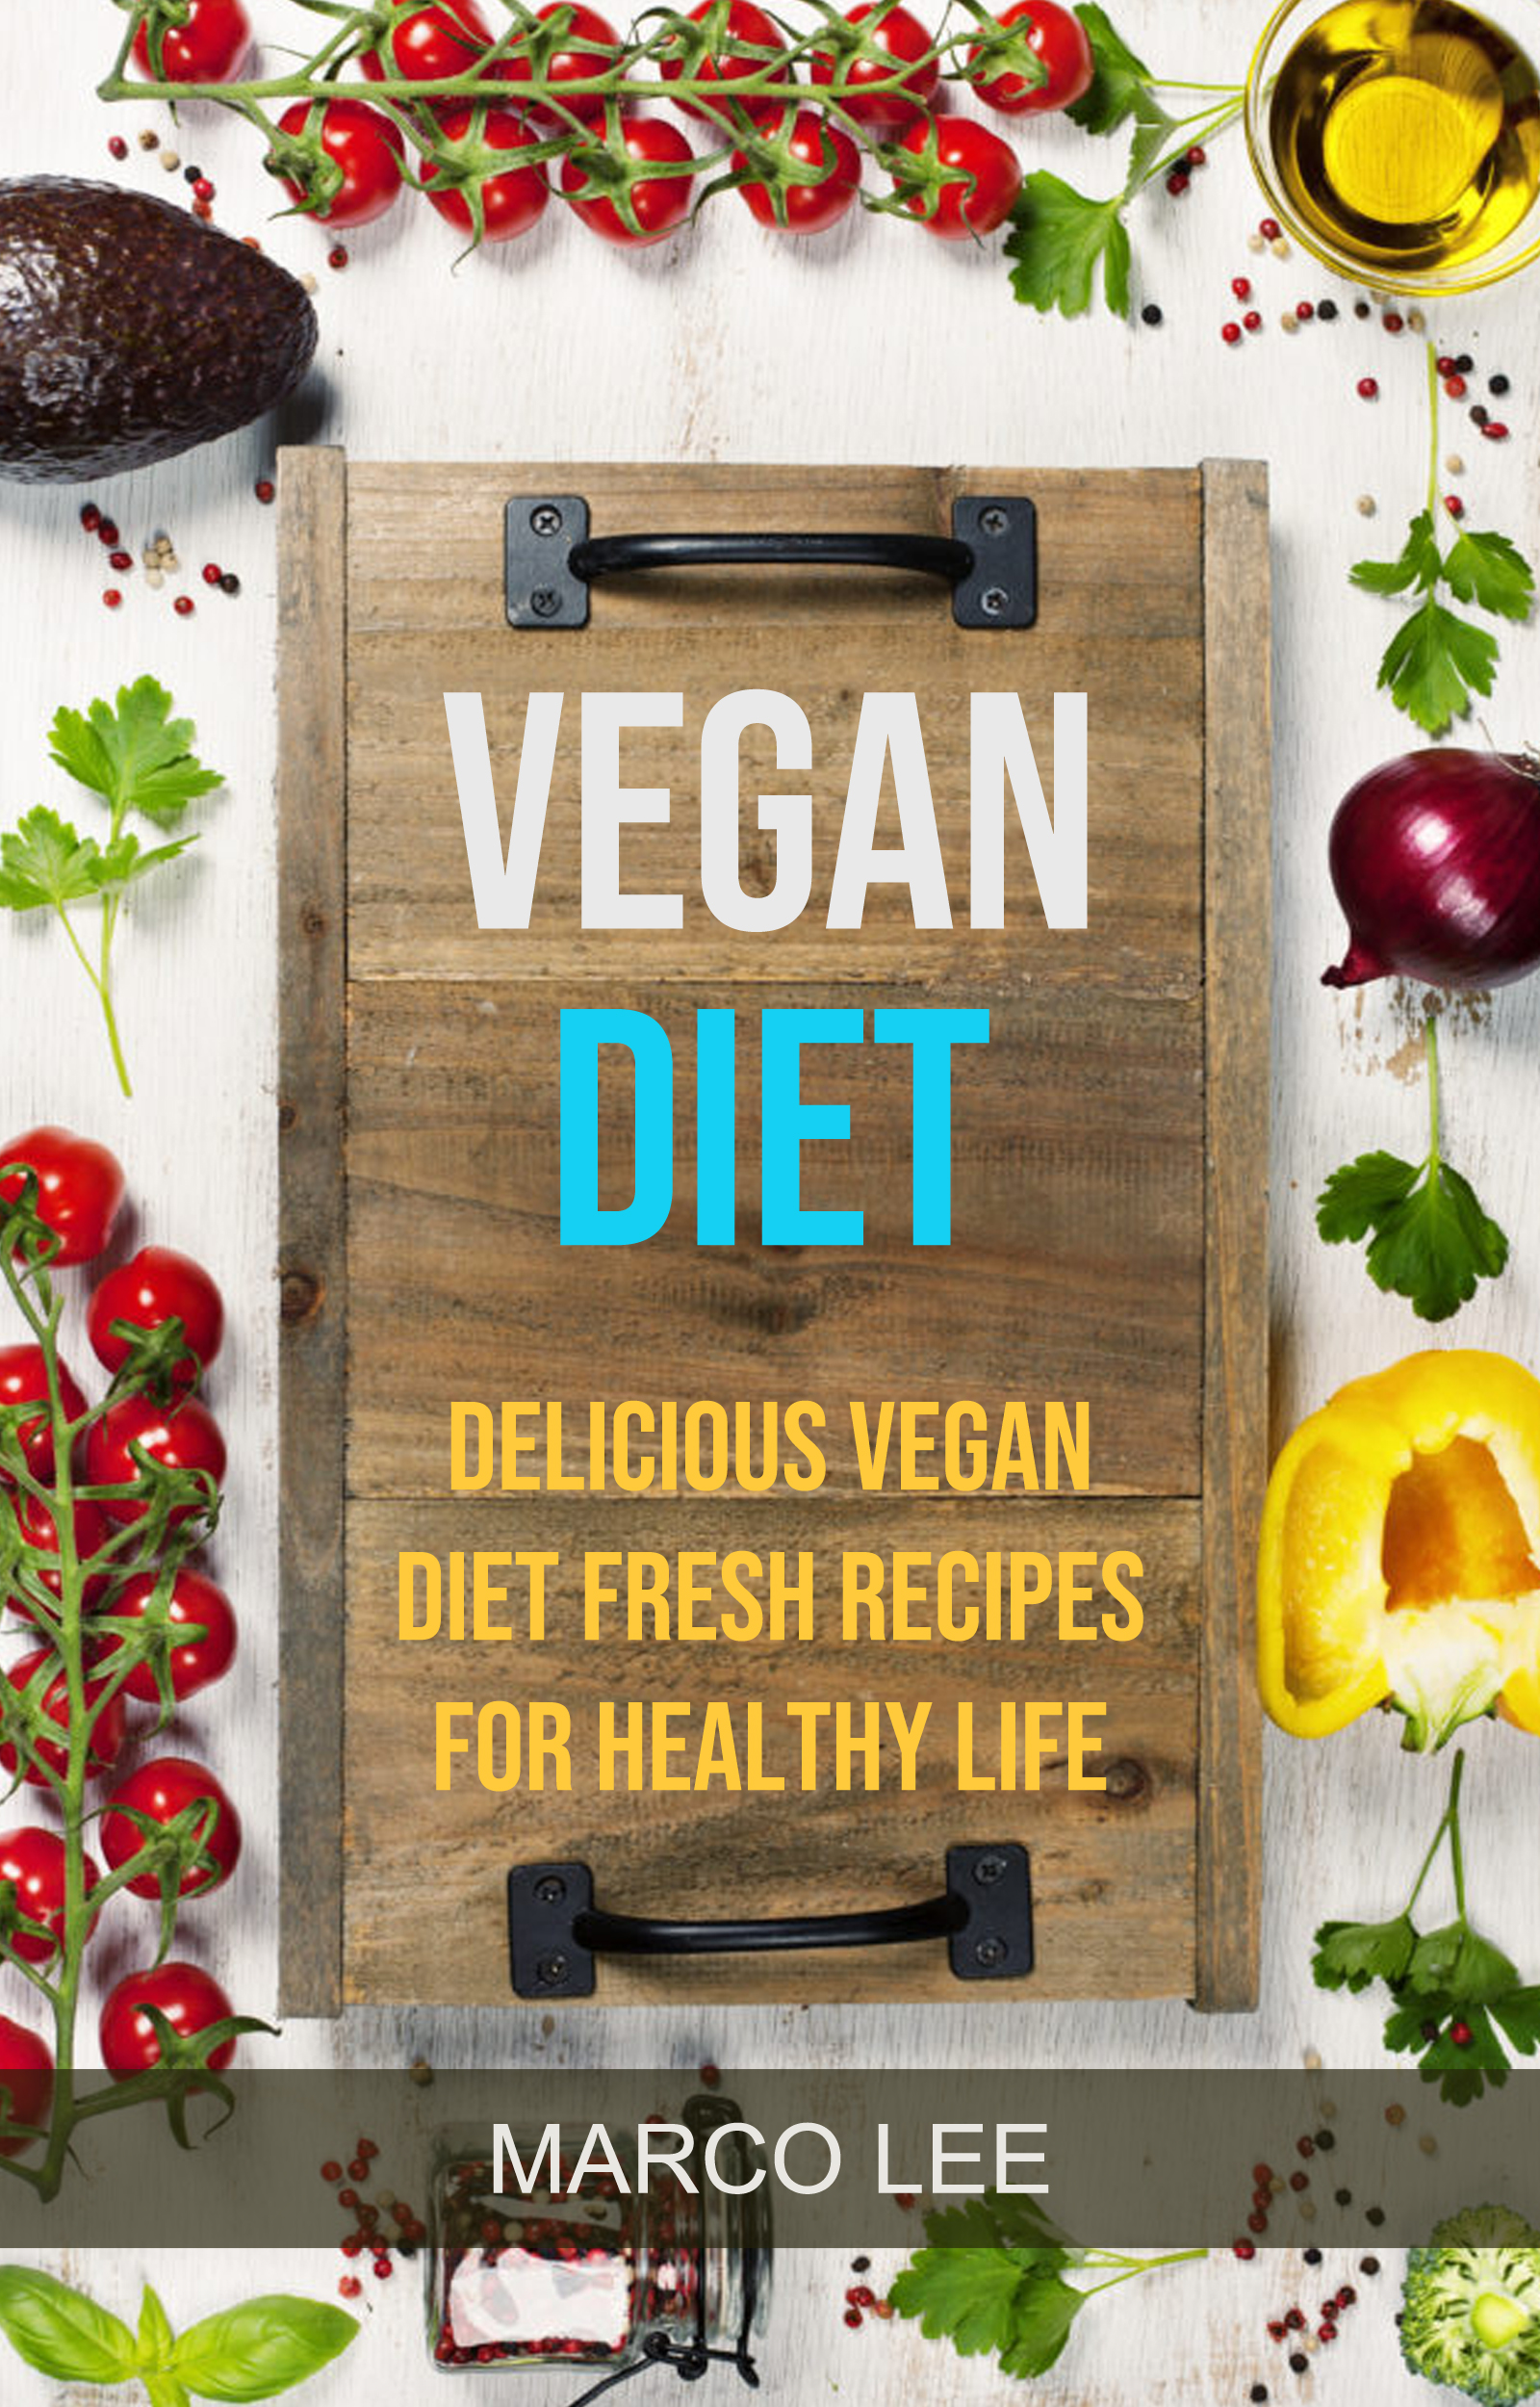 Vegan diet: delicious vegan diet fresh recipes for healthy life